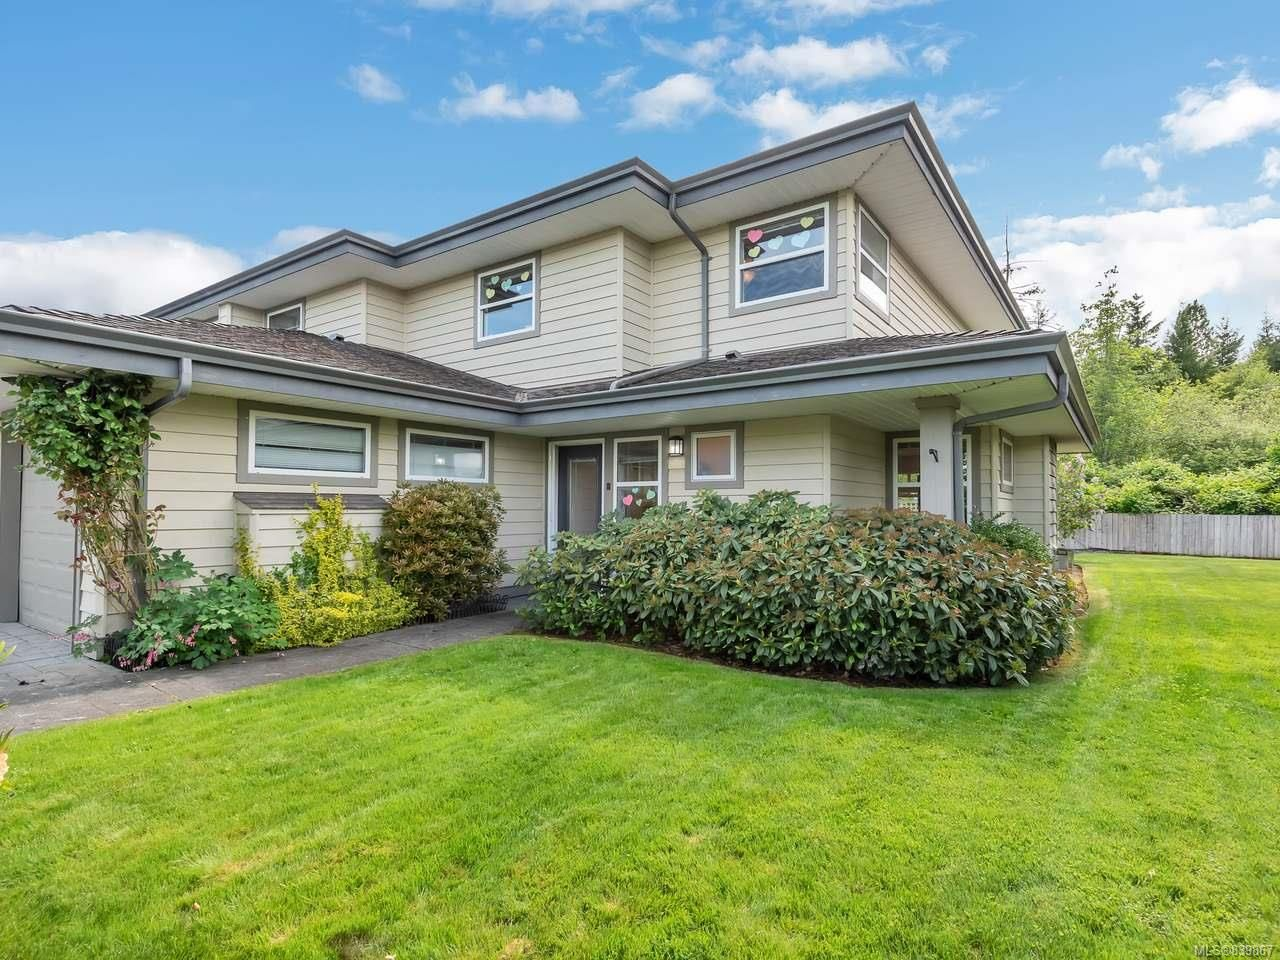 Photo 1: Photos: 21 2750 Denman St in CAMPBELL RIVER: CR Willow Point Row/Townhouse for sale (Campbell River)  : MLS®# 839867